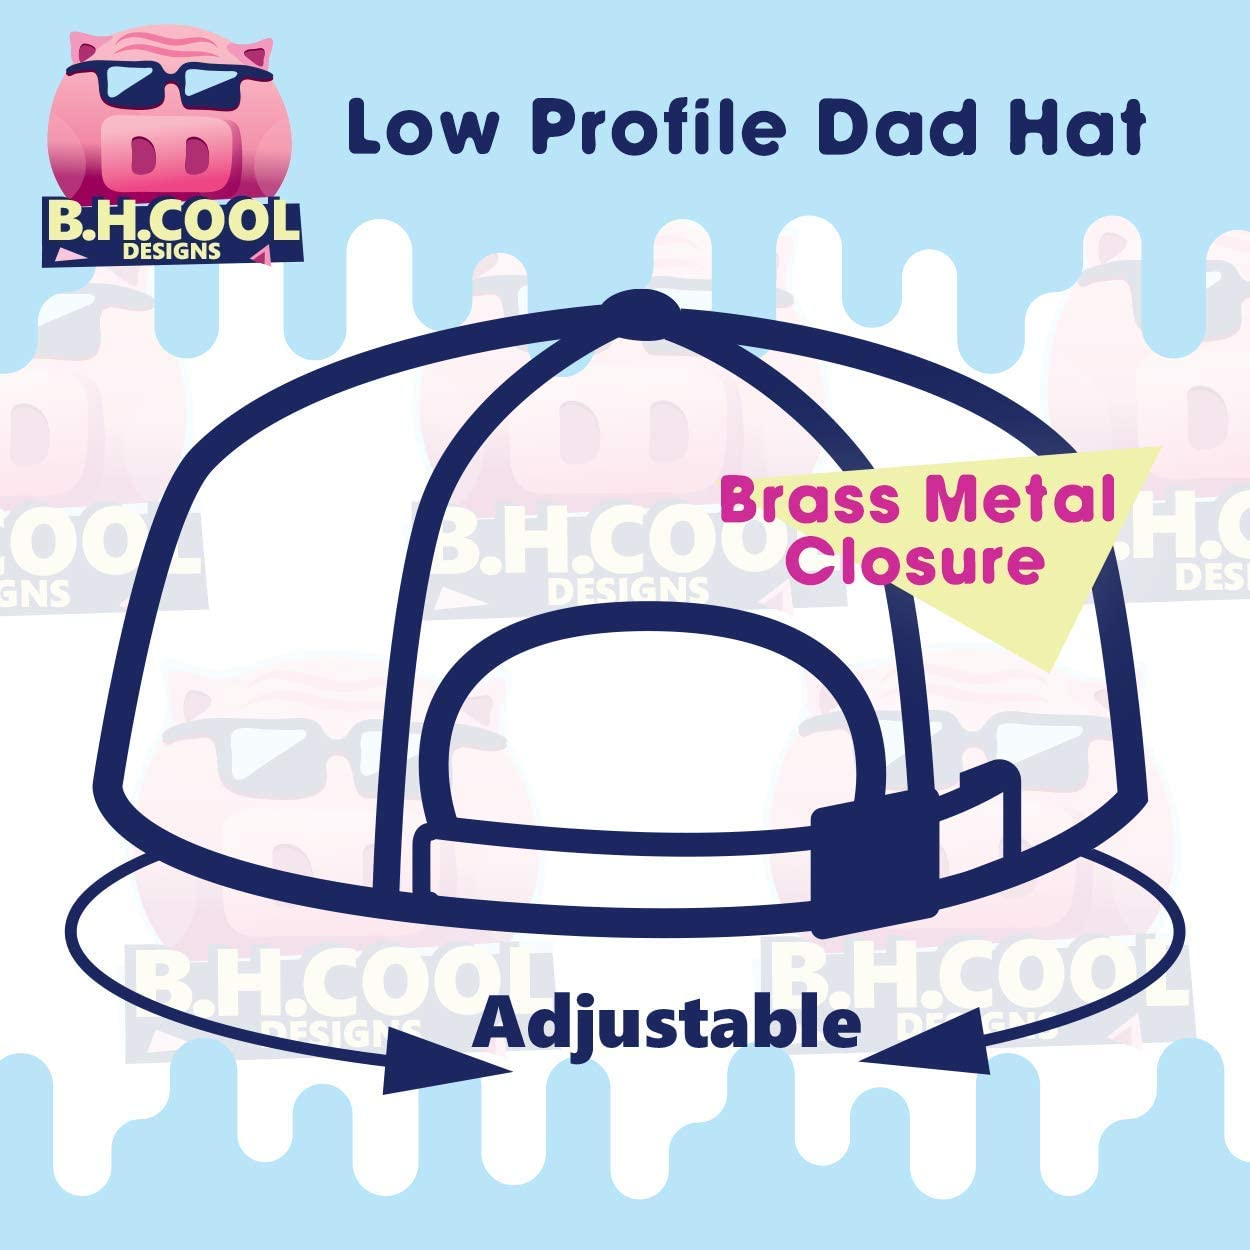 BH Cool Designs #Clubfoot Comfortable Dad Hat Baseball Cap